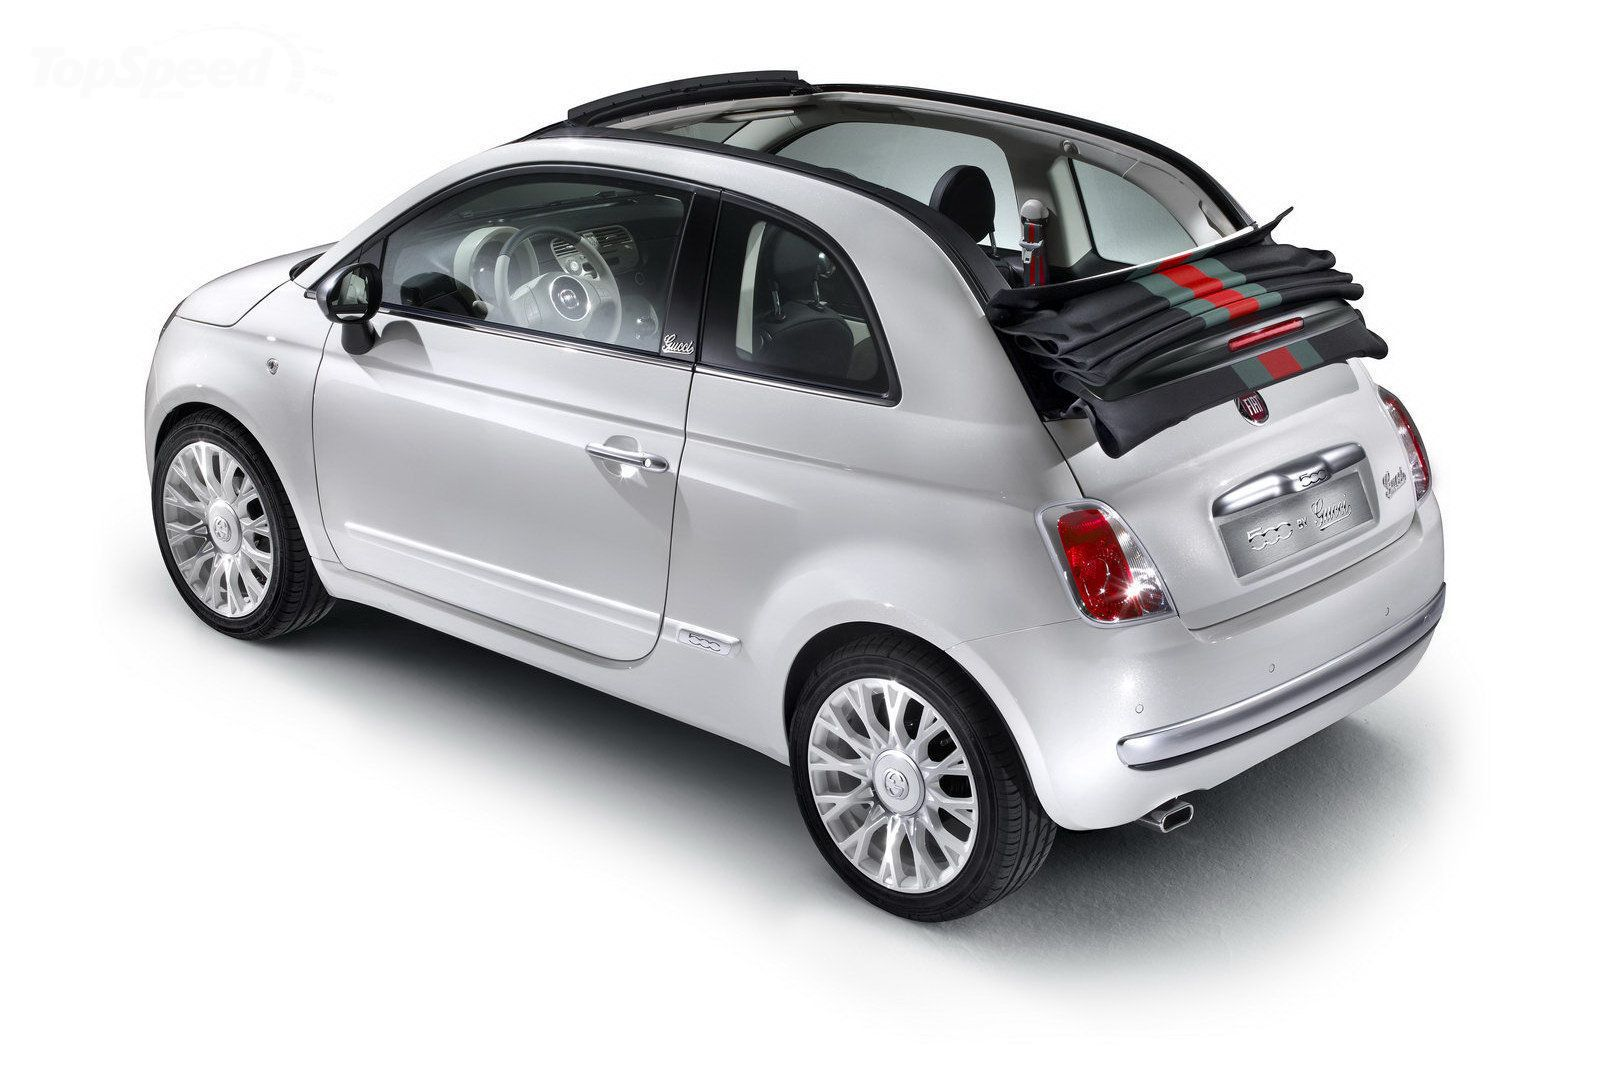 2012 Fiat 500 Cabriolet By Gucci Gallery 411498 With Images